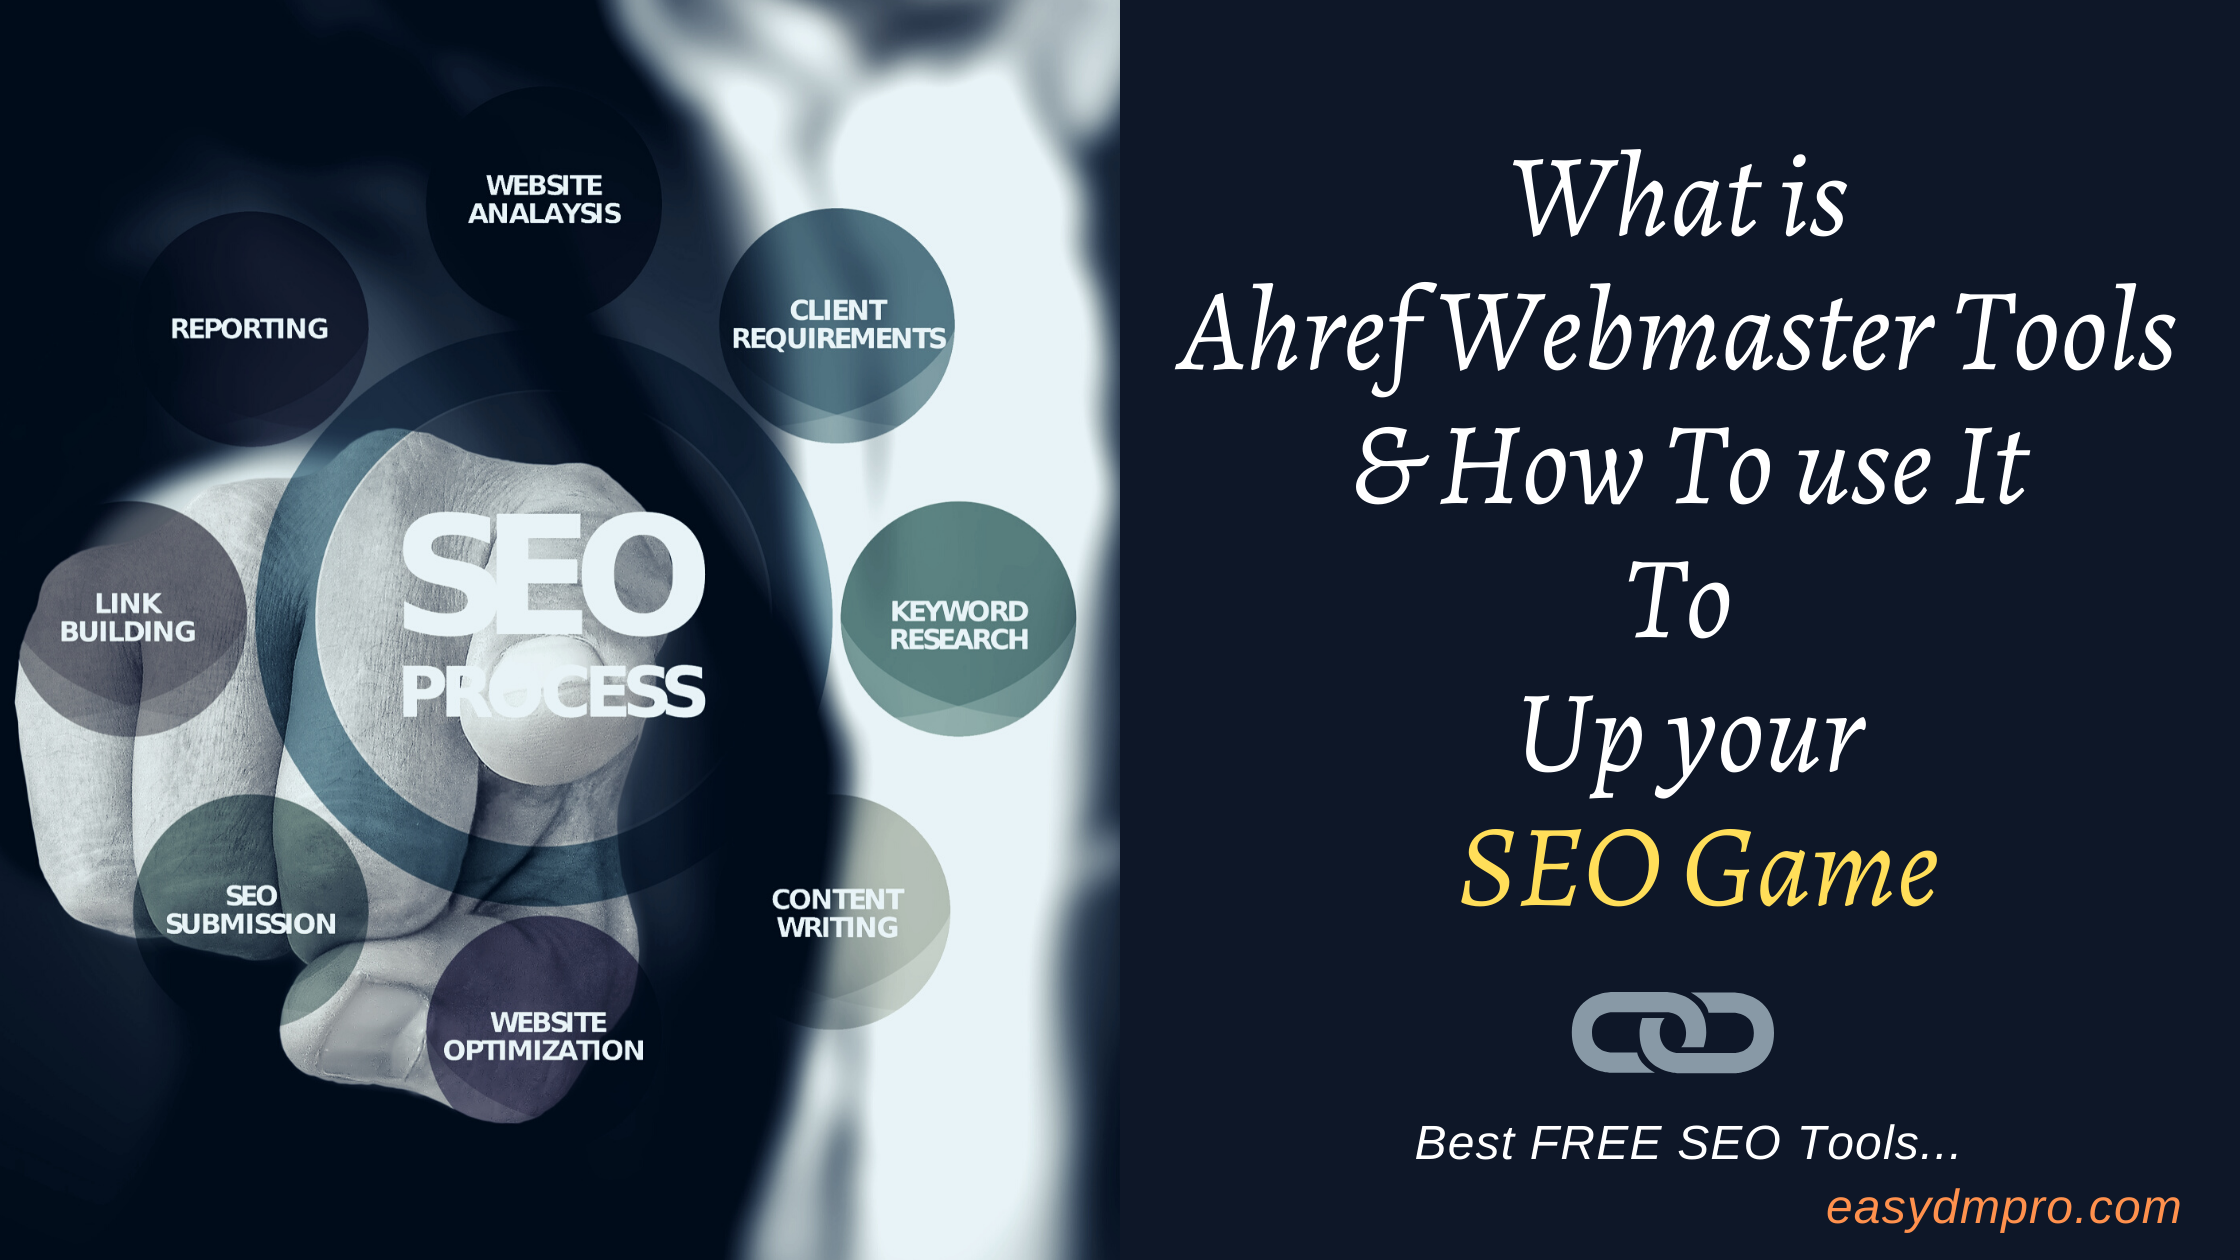 How To use Ahref Webmaster Tools To Up your SEO Game